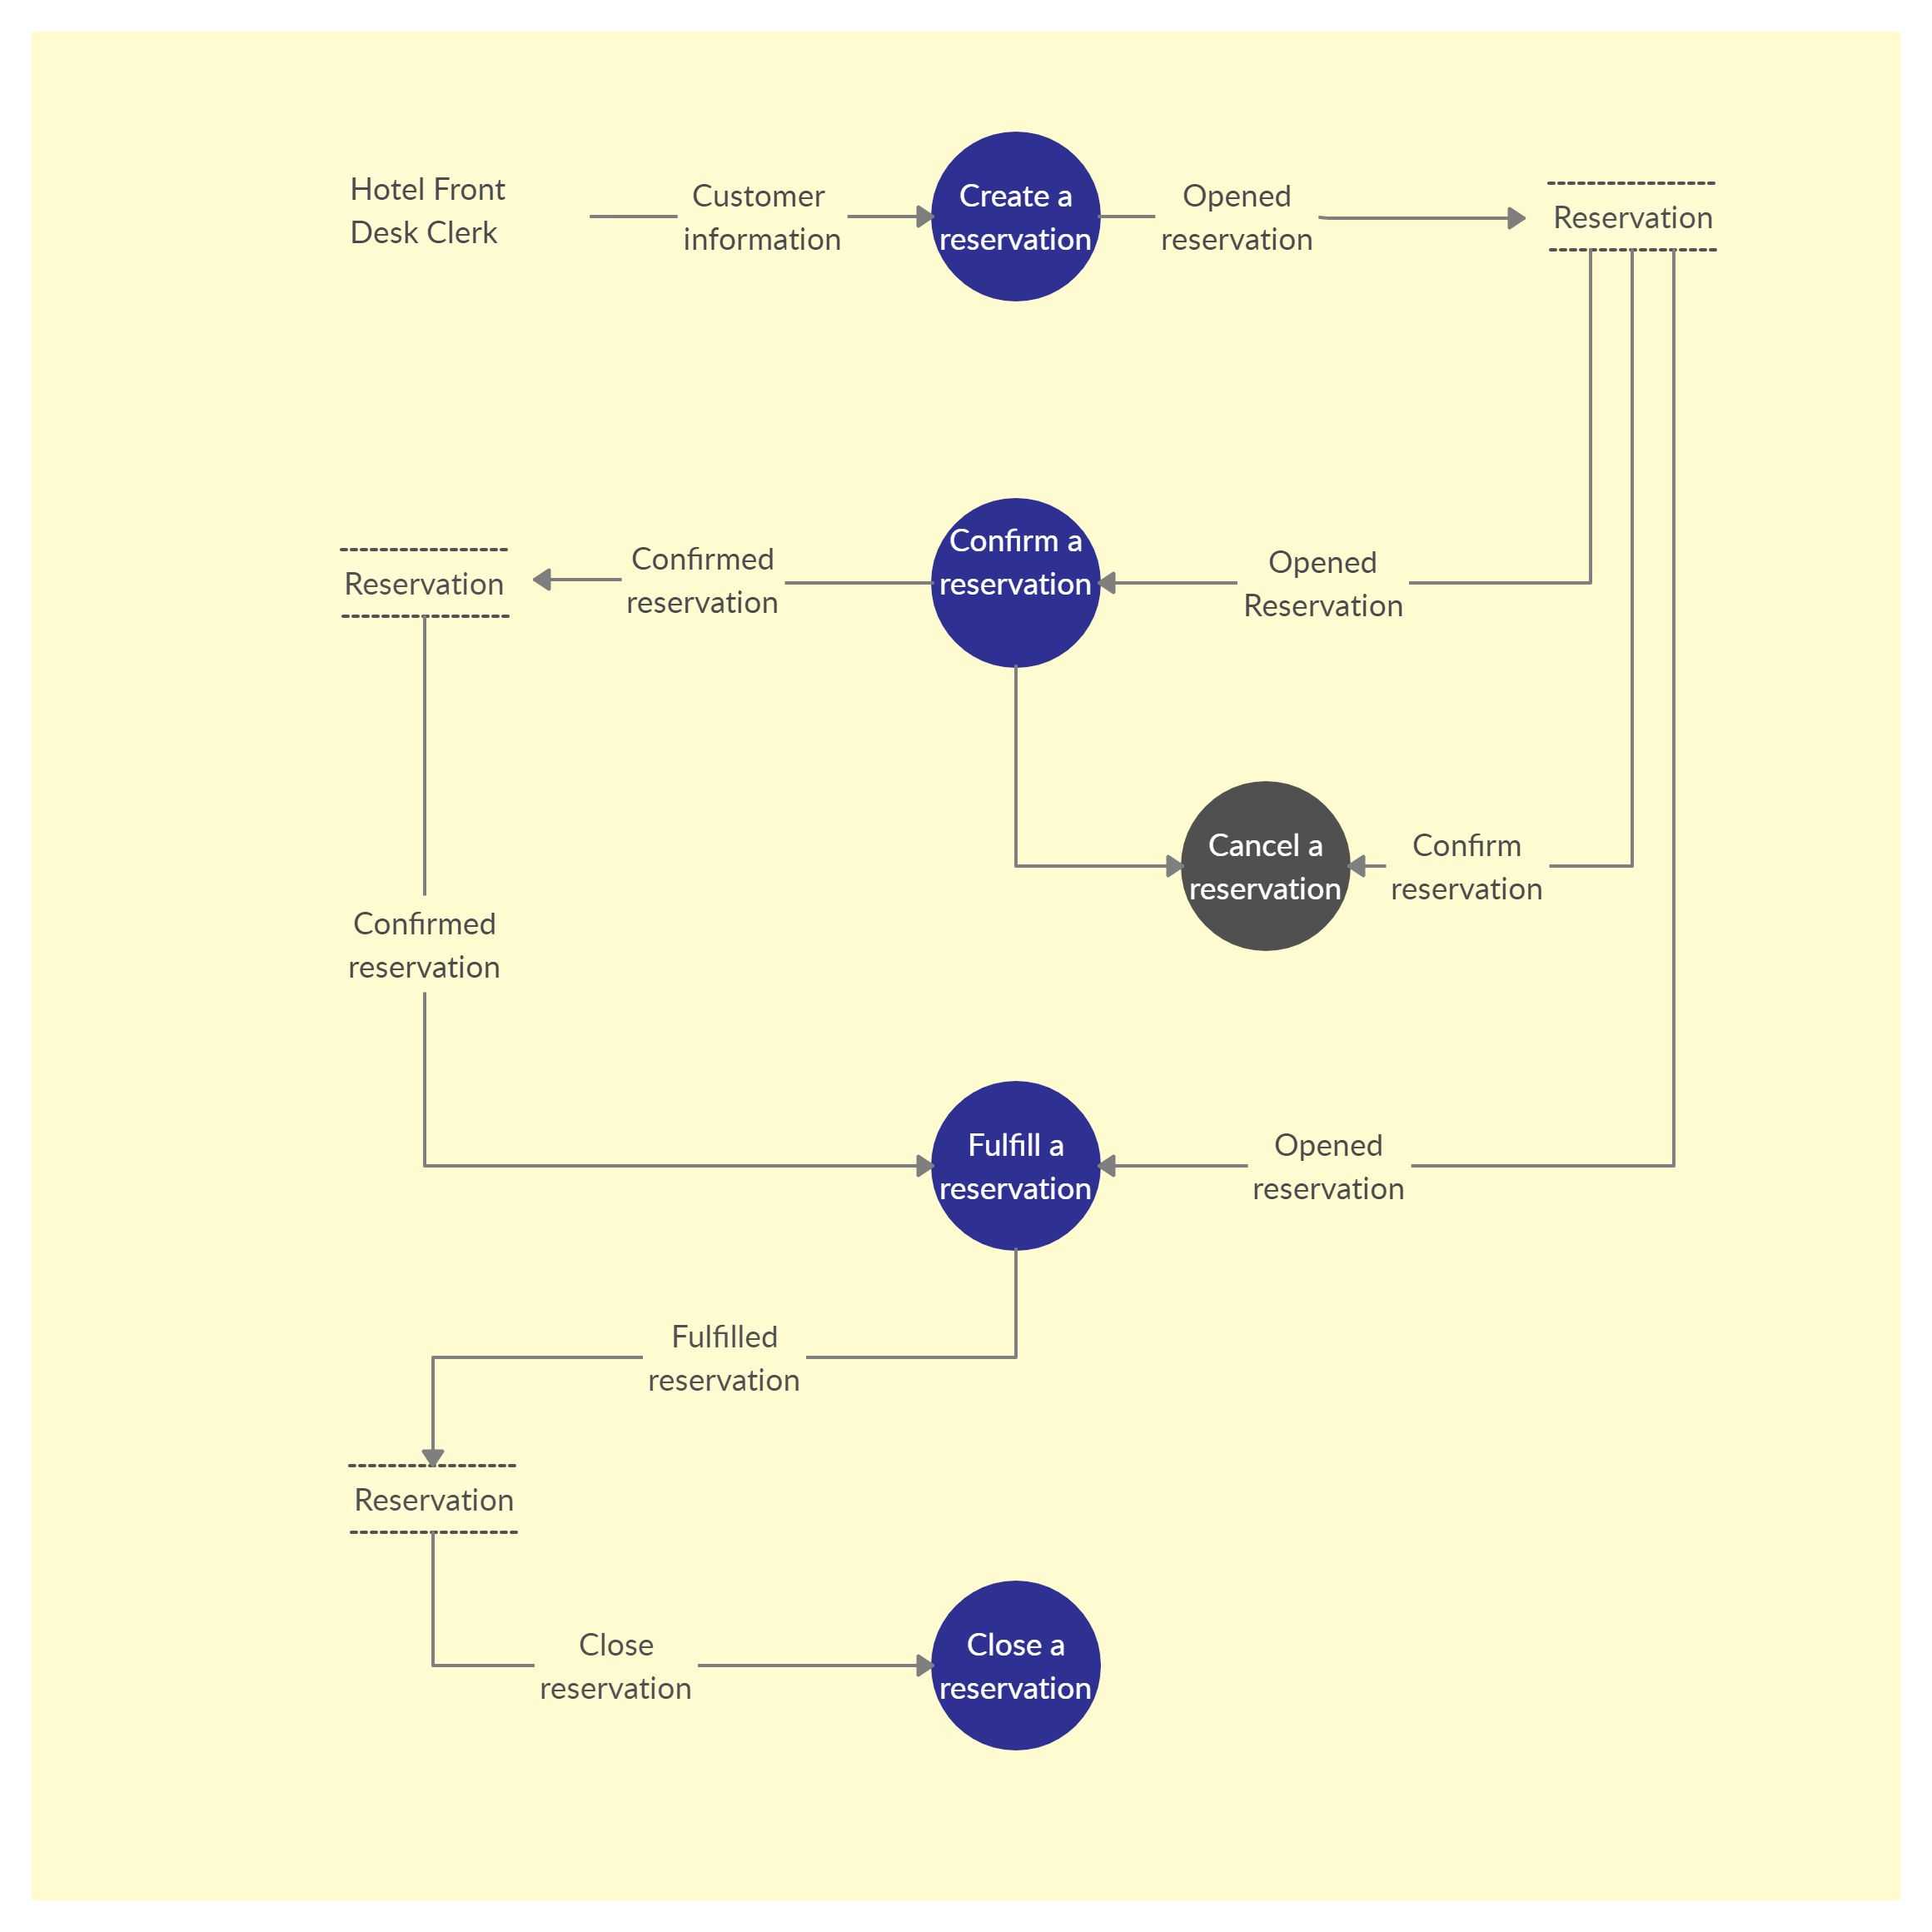 Level 1 Data Flow Diagram Template For Hotel Management System